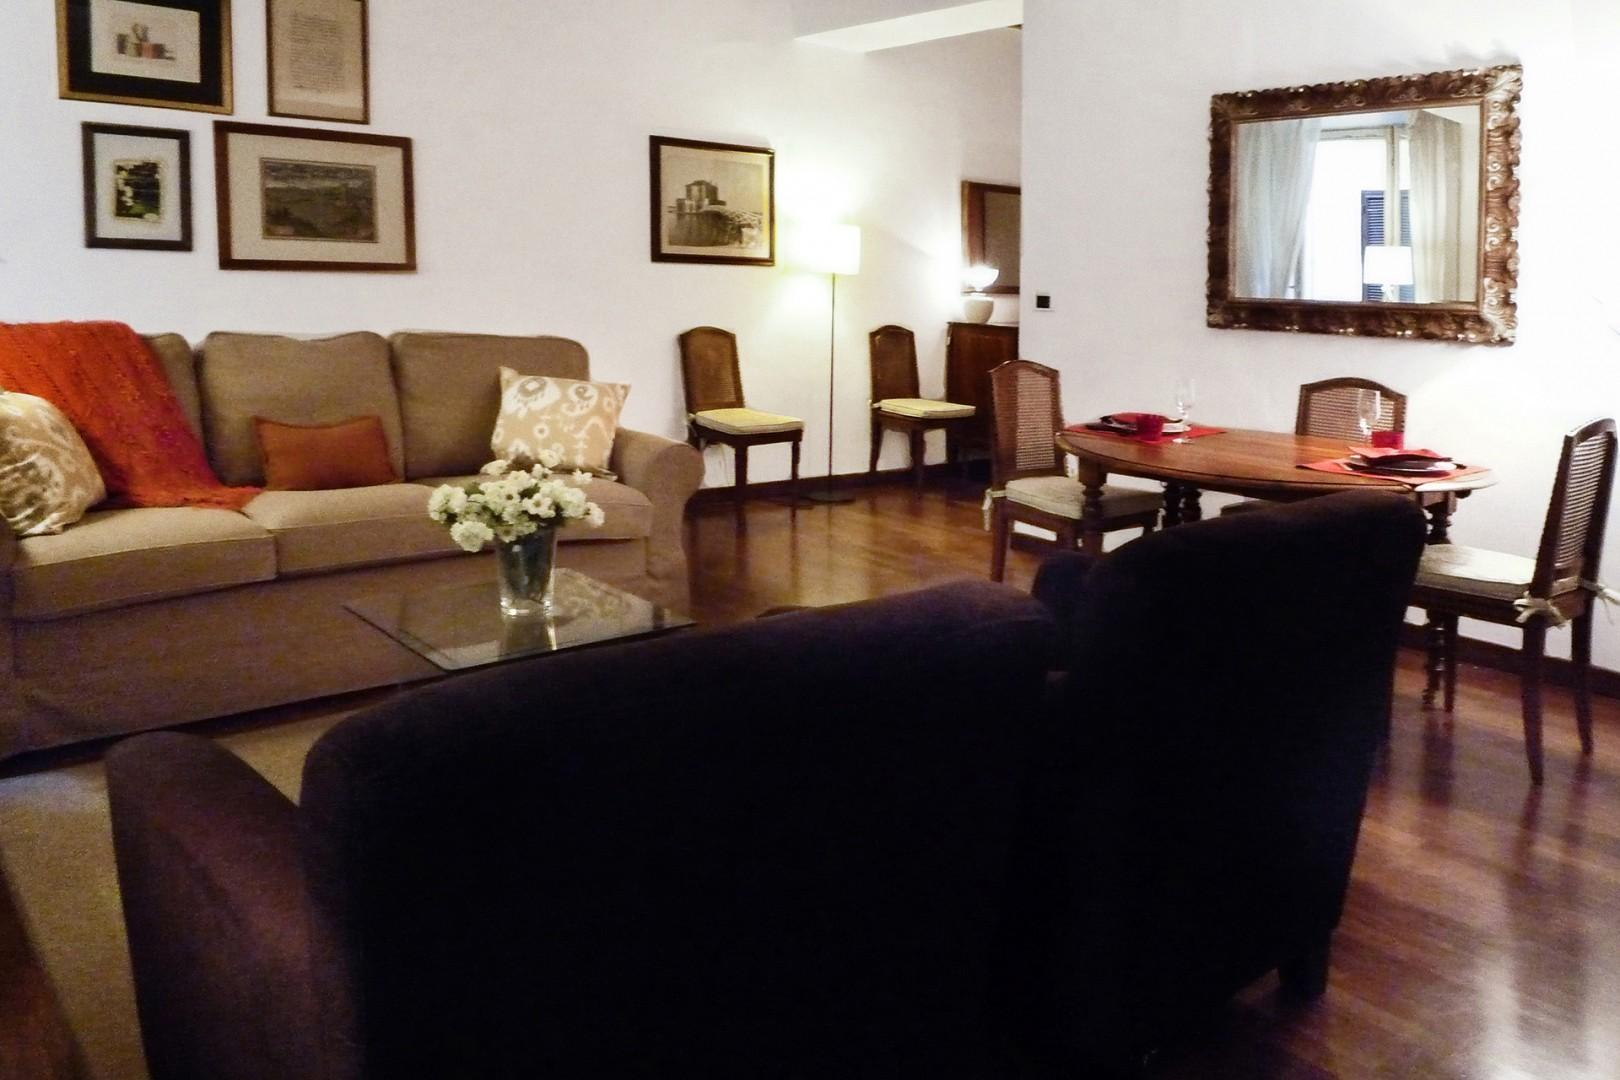 This apartment is a junior one bedroom, seen here just to the left of the dining table.